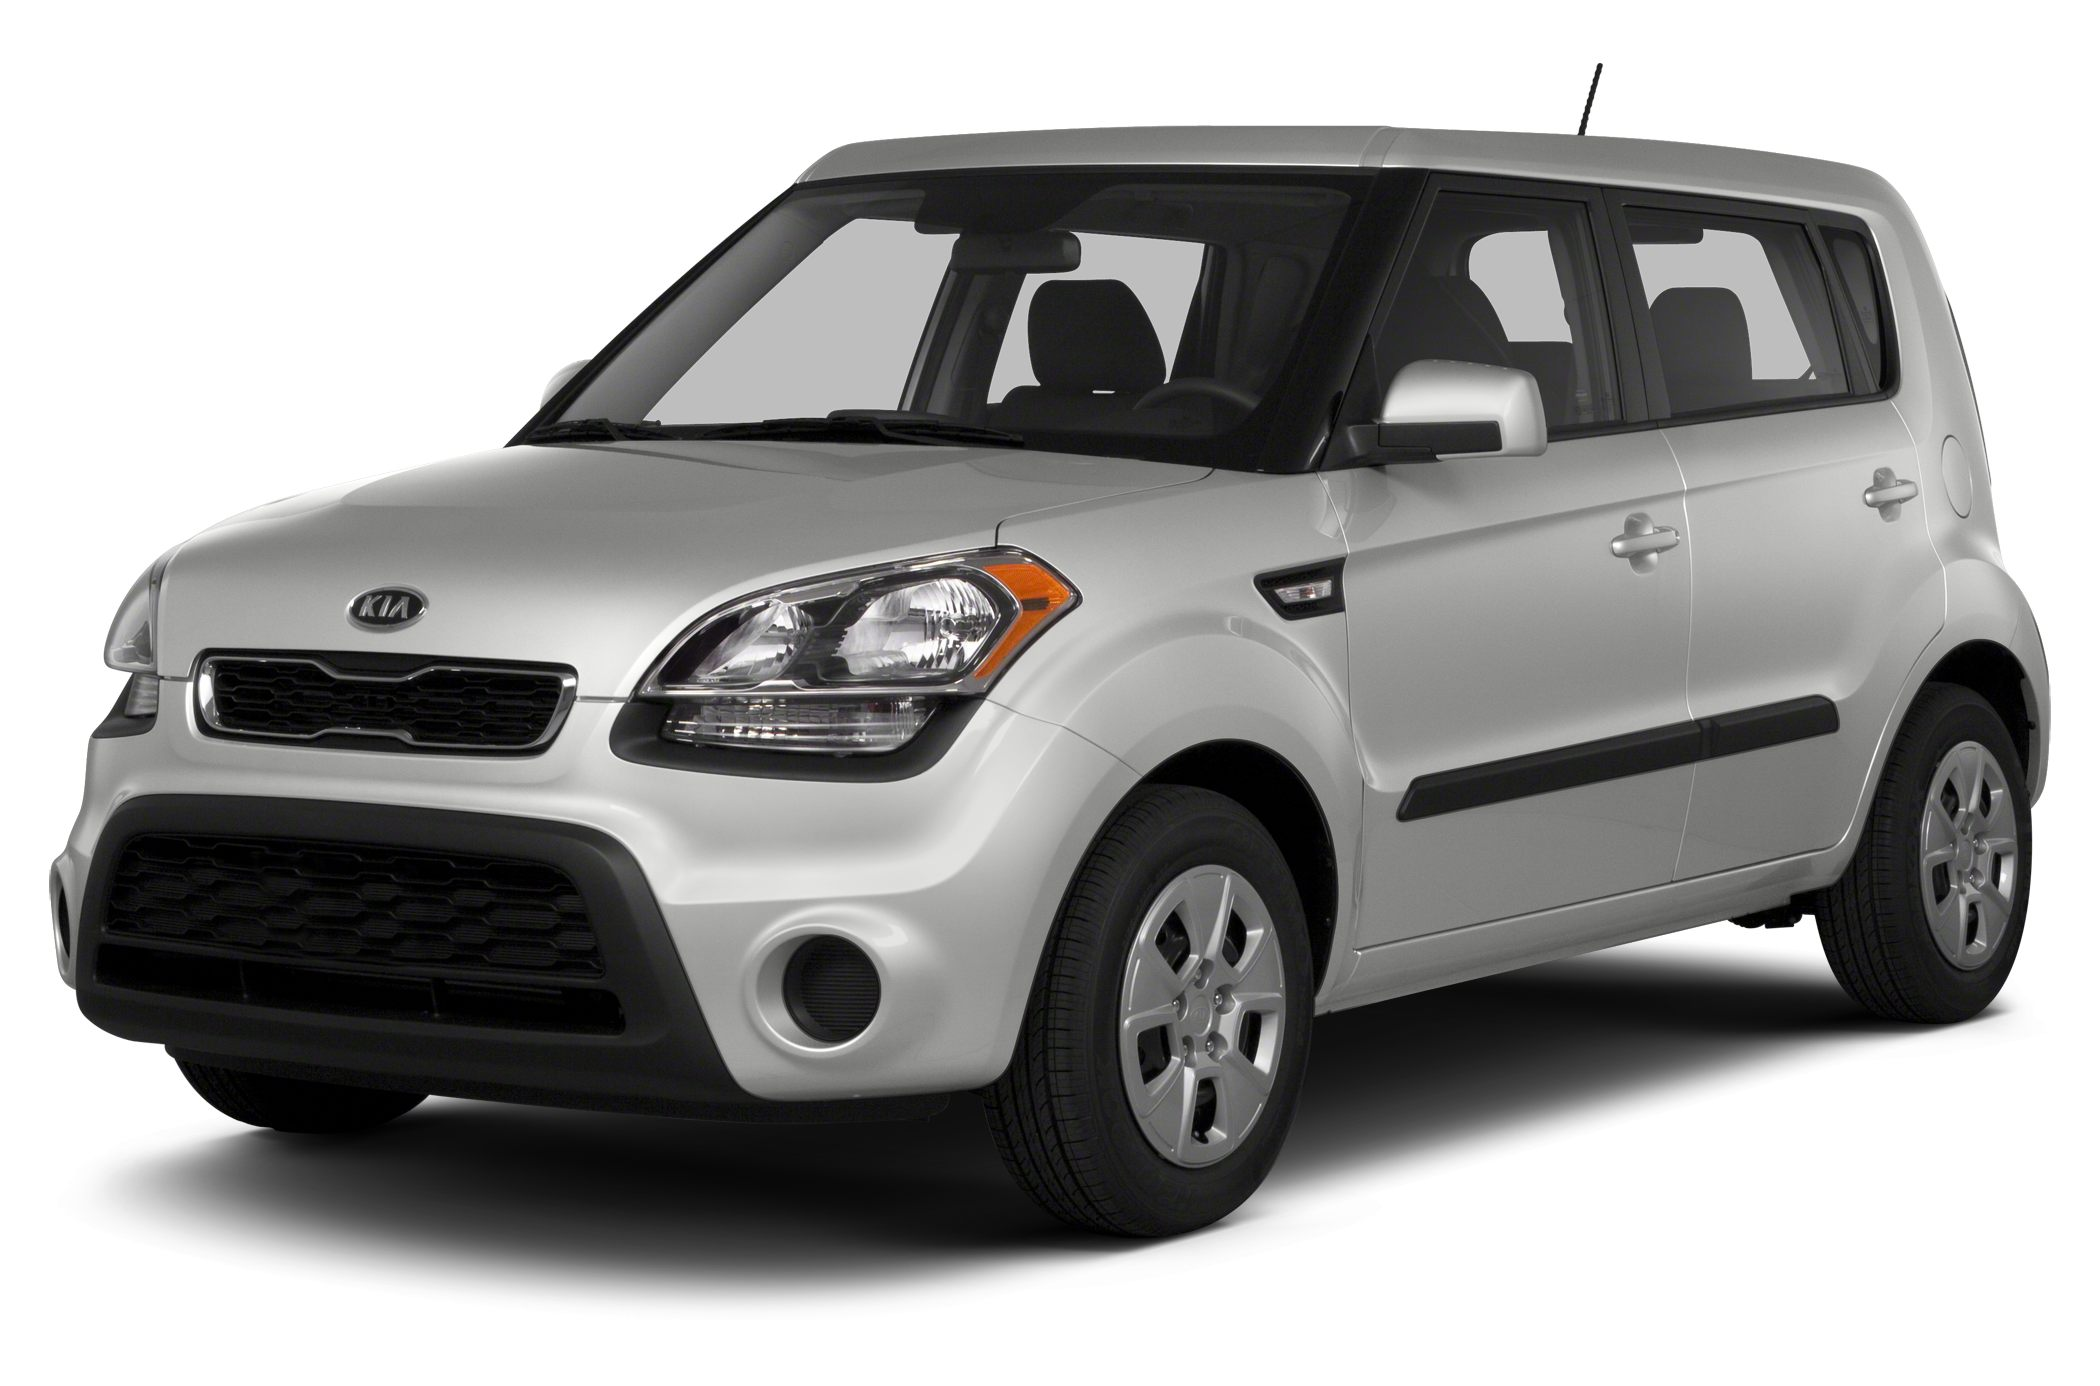 2013 Kia Soul Base Wagon for sale in Fort Worth for $12,999 with 61,058 miles